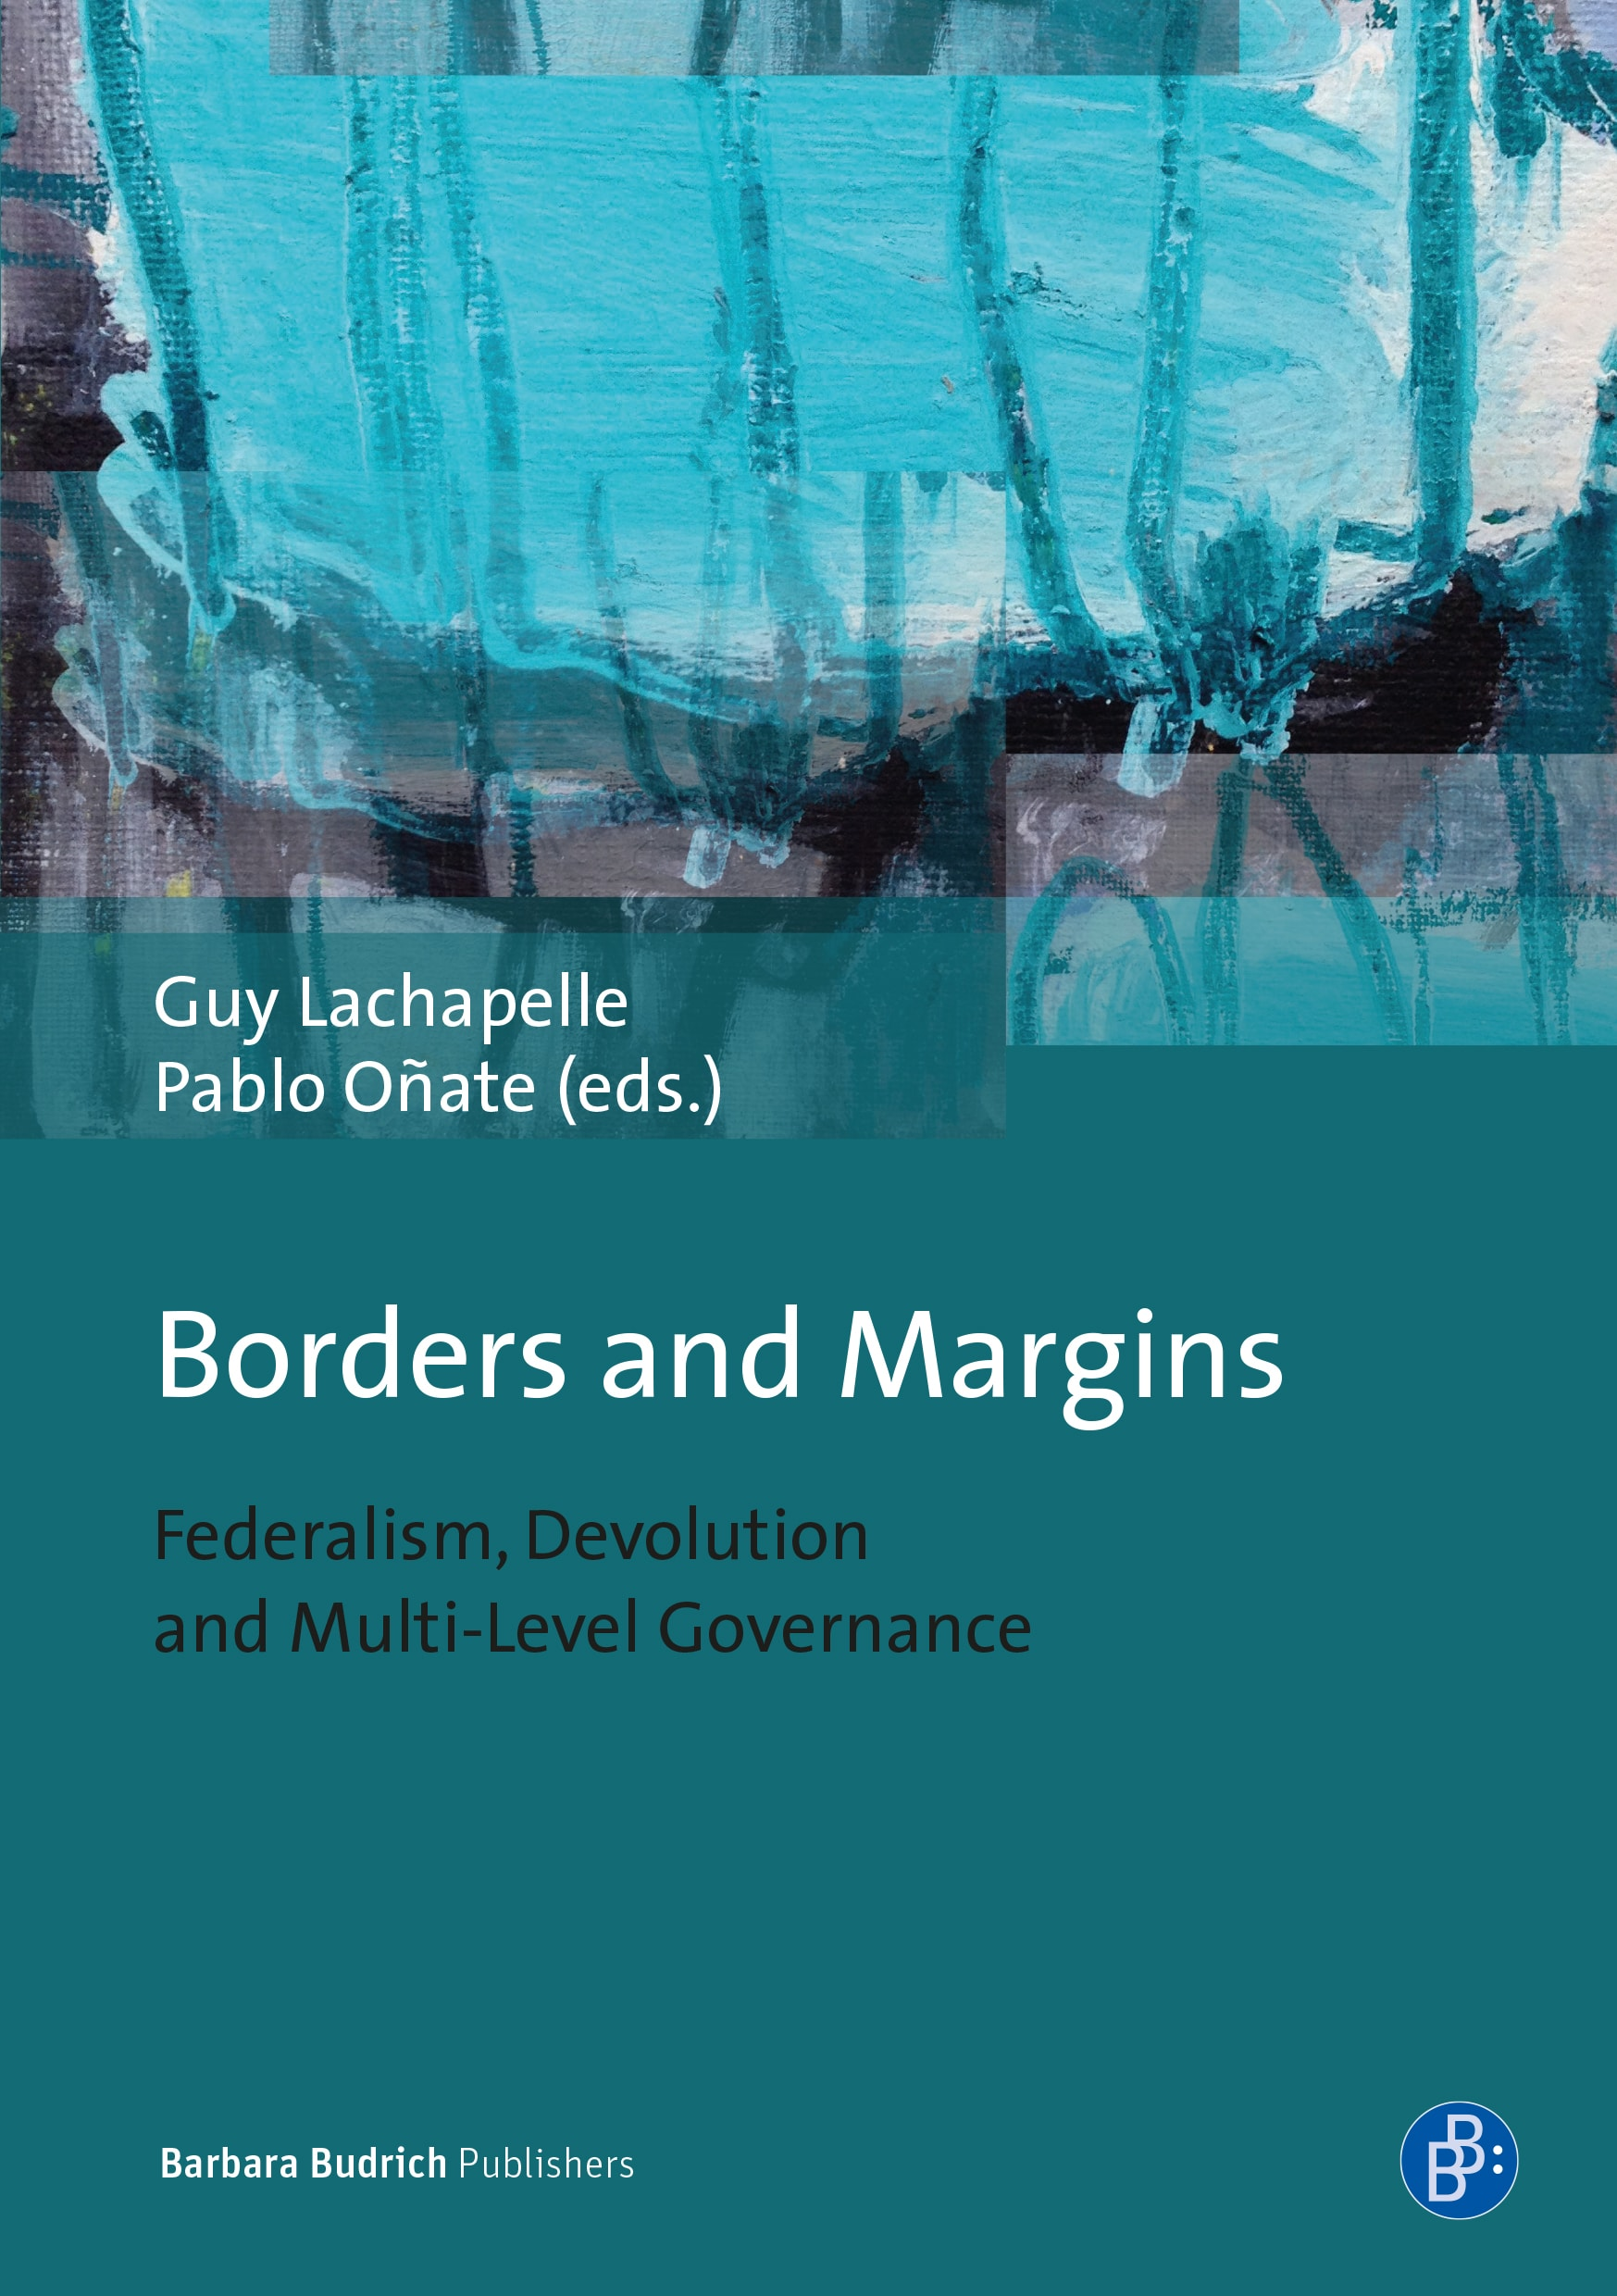 Borders and Margins